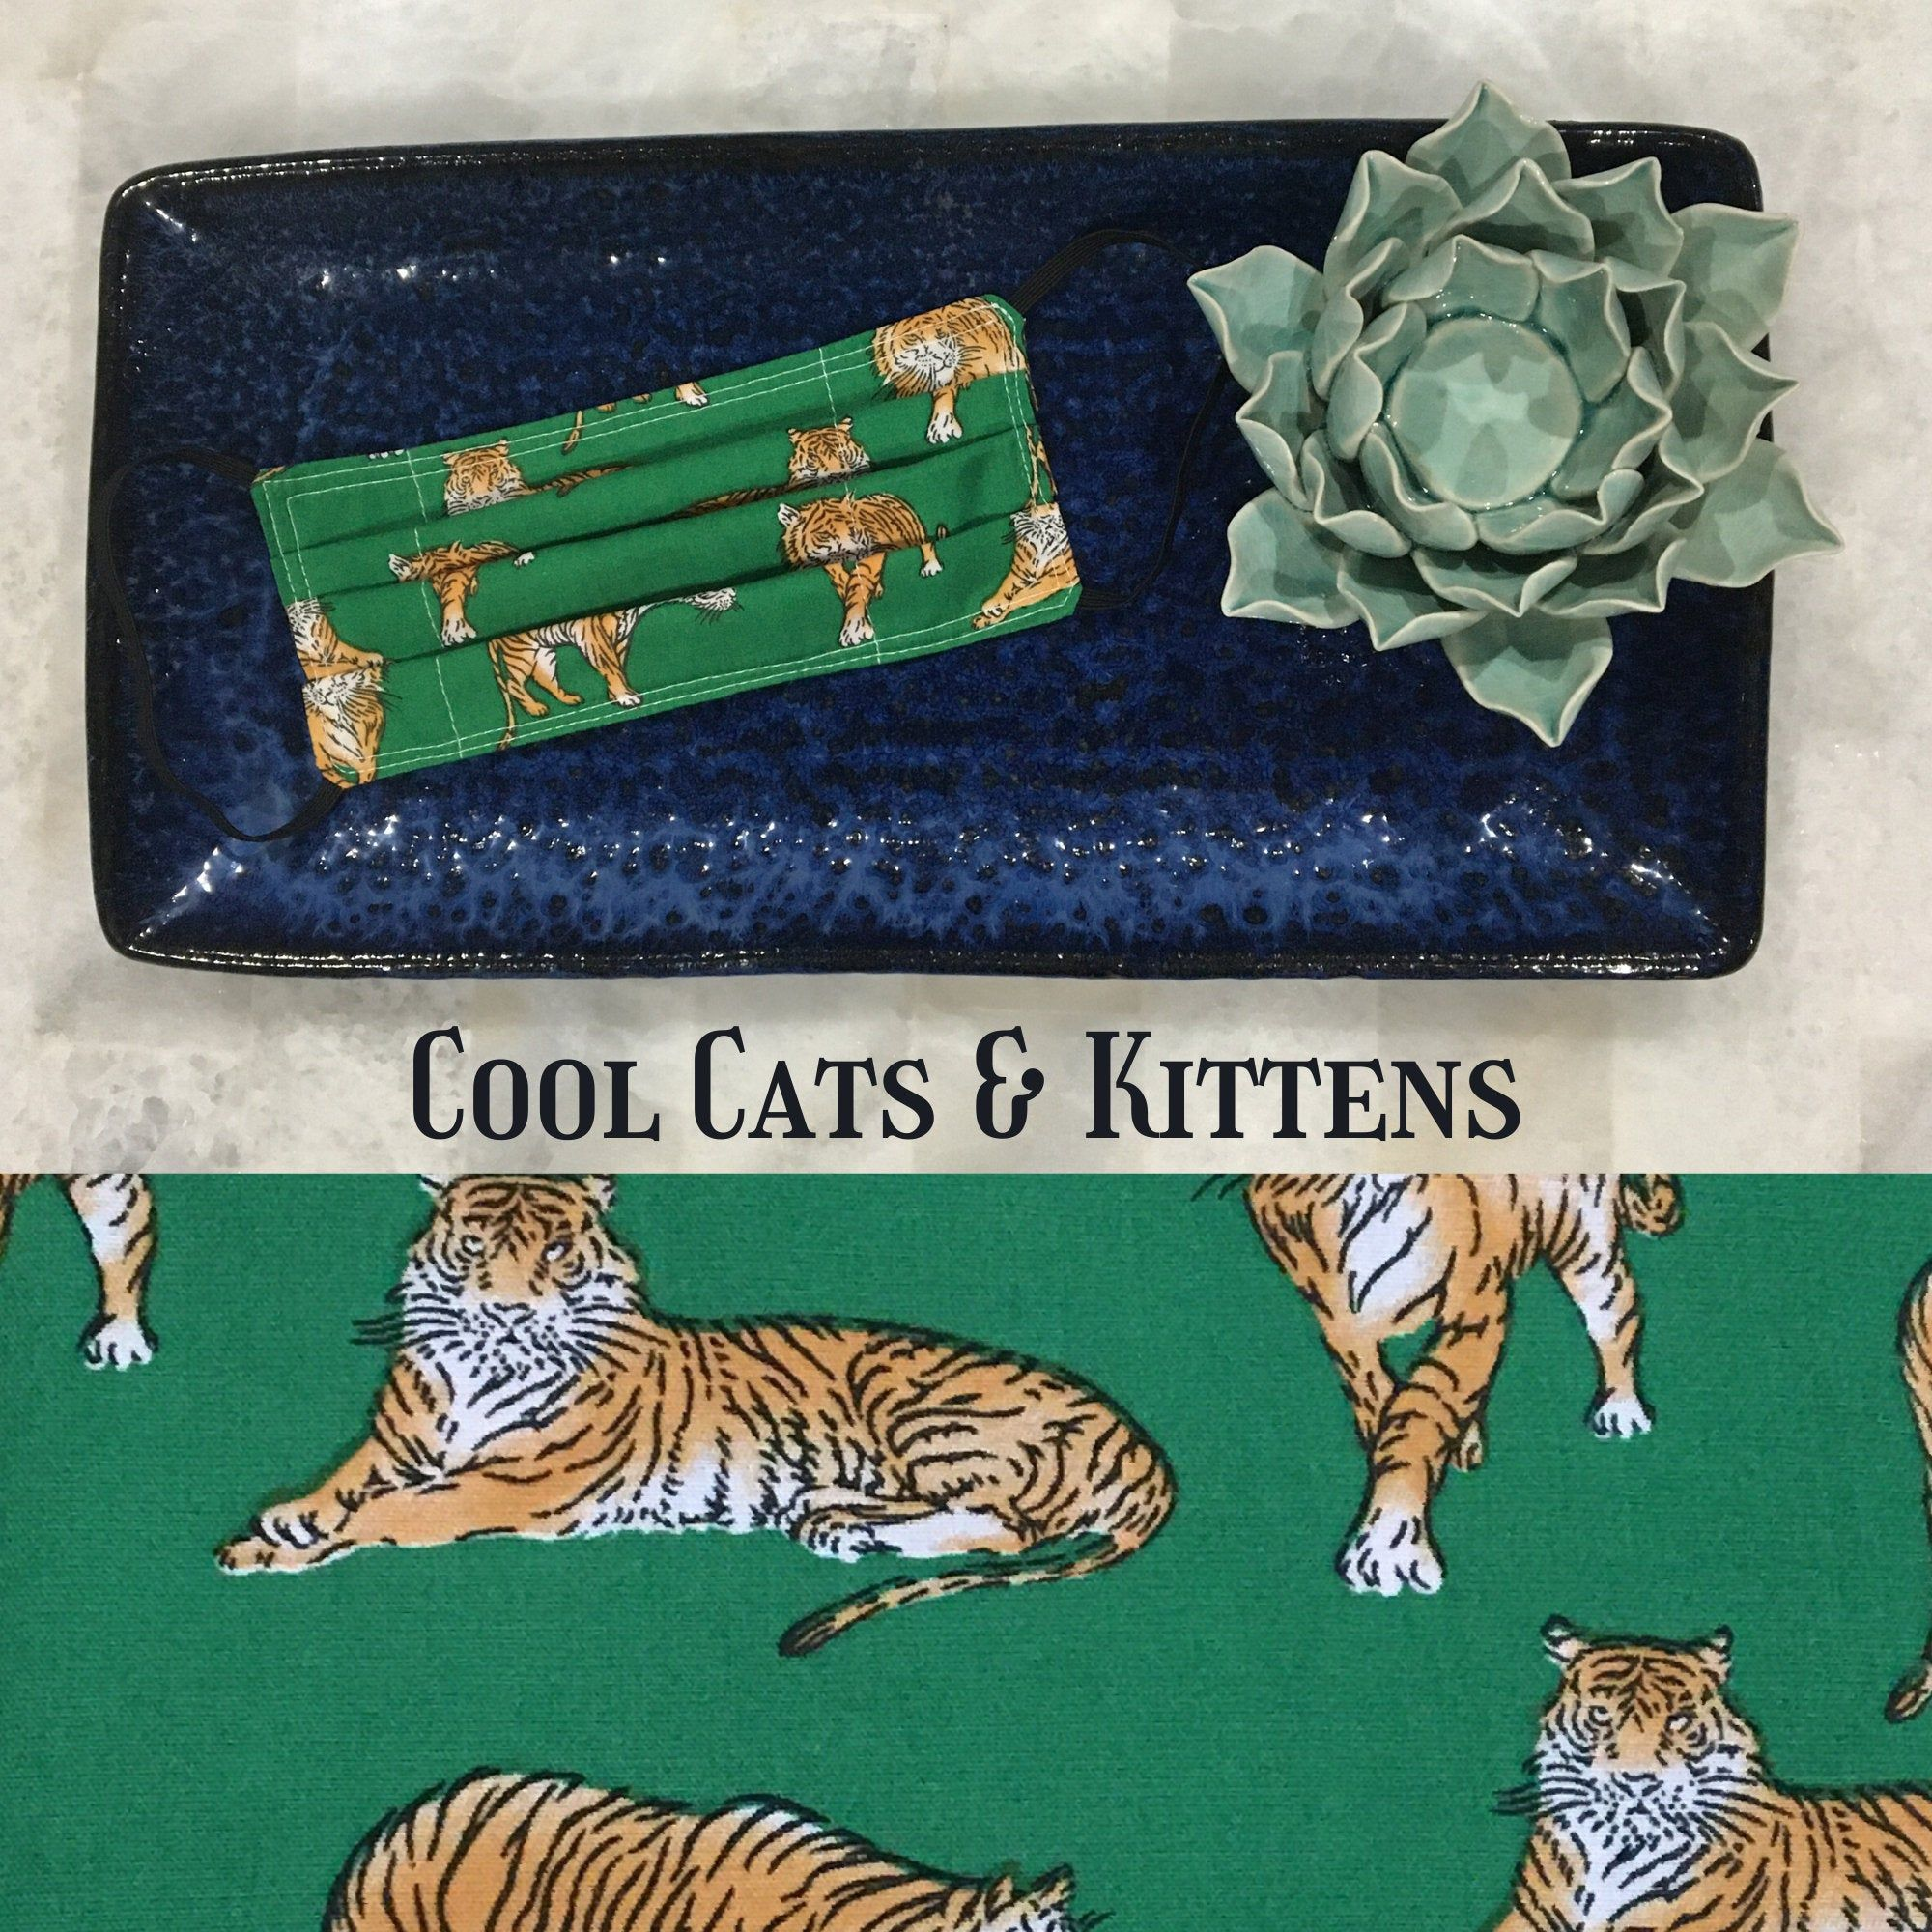 Reusable Face Mask Cool Cats And Kittens Etsy In 2020 Cool Cats Cats And Kittens Kittens